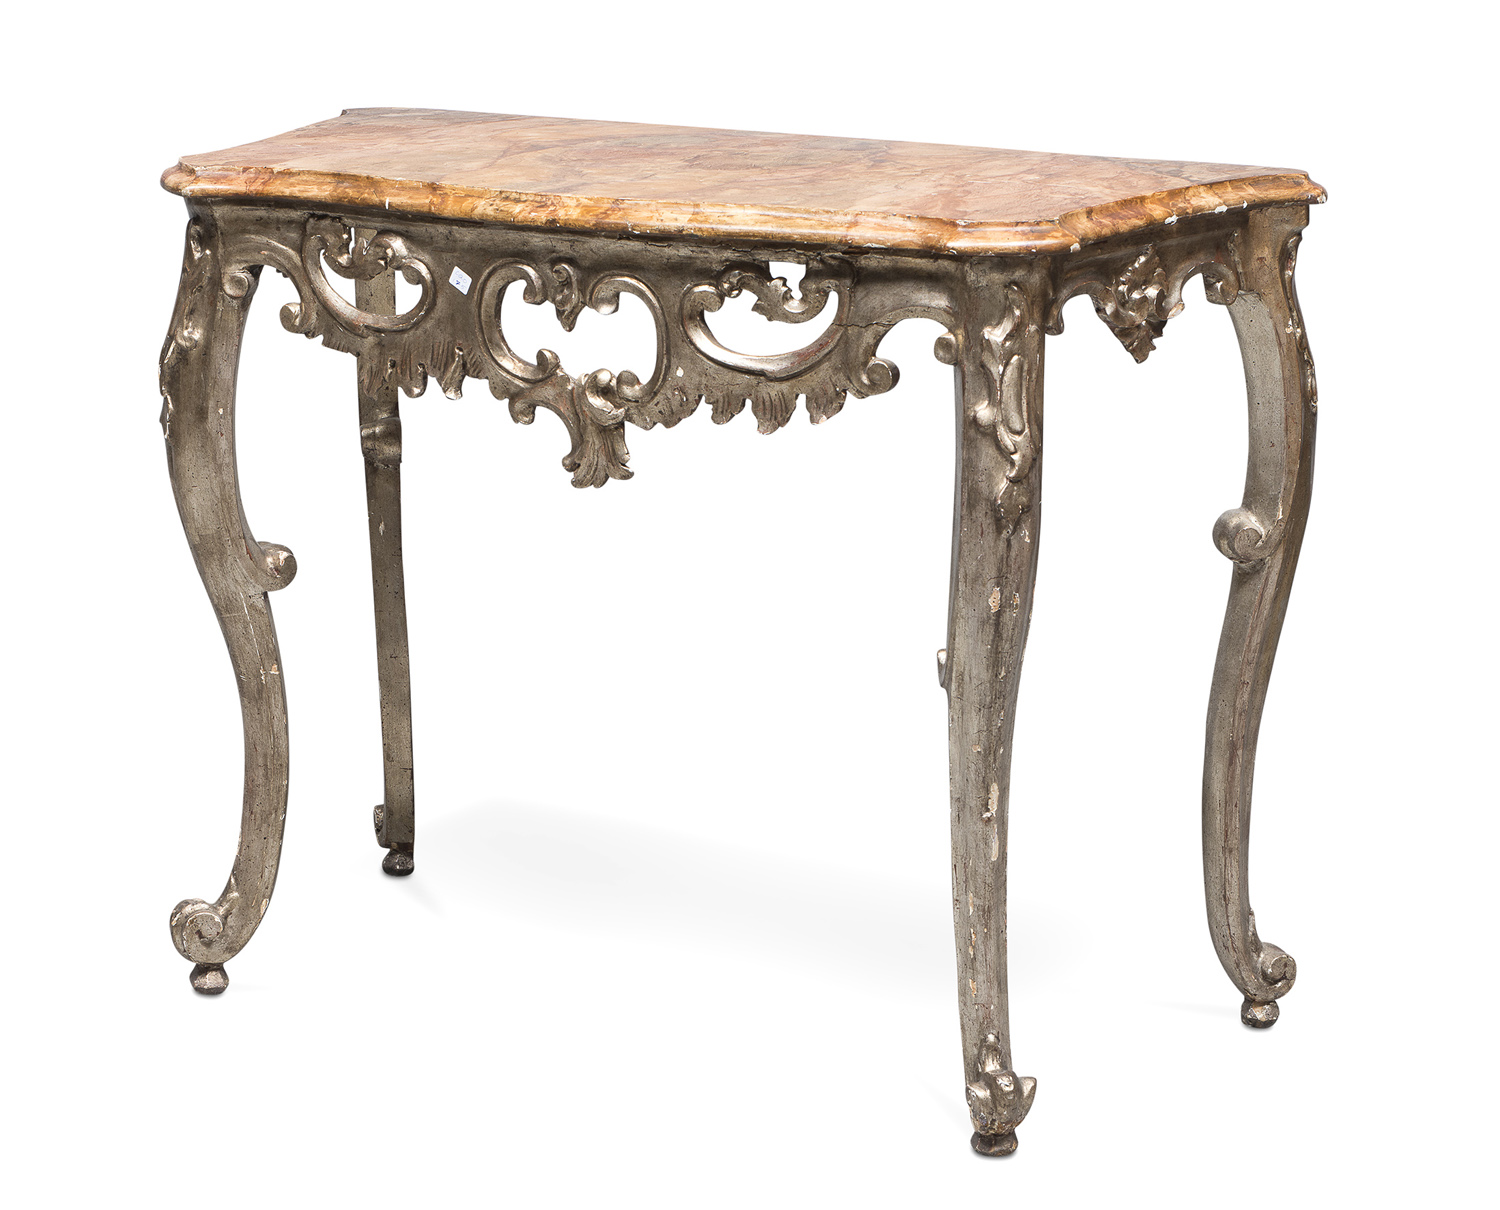 SMALL CONSOLE IN SILVERED WOOD ELEMENTS OF THE 18th CENTURY